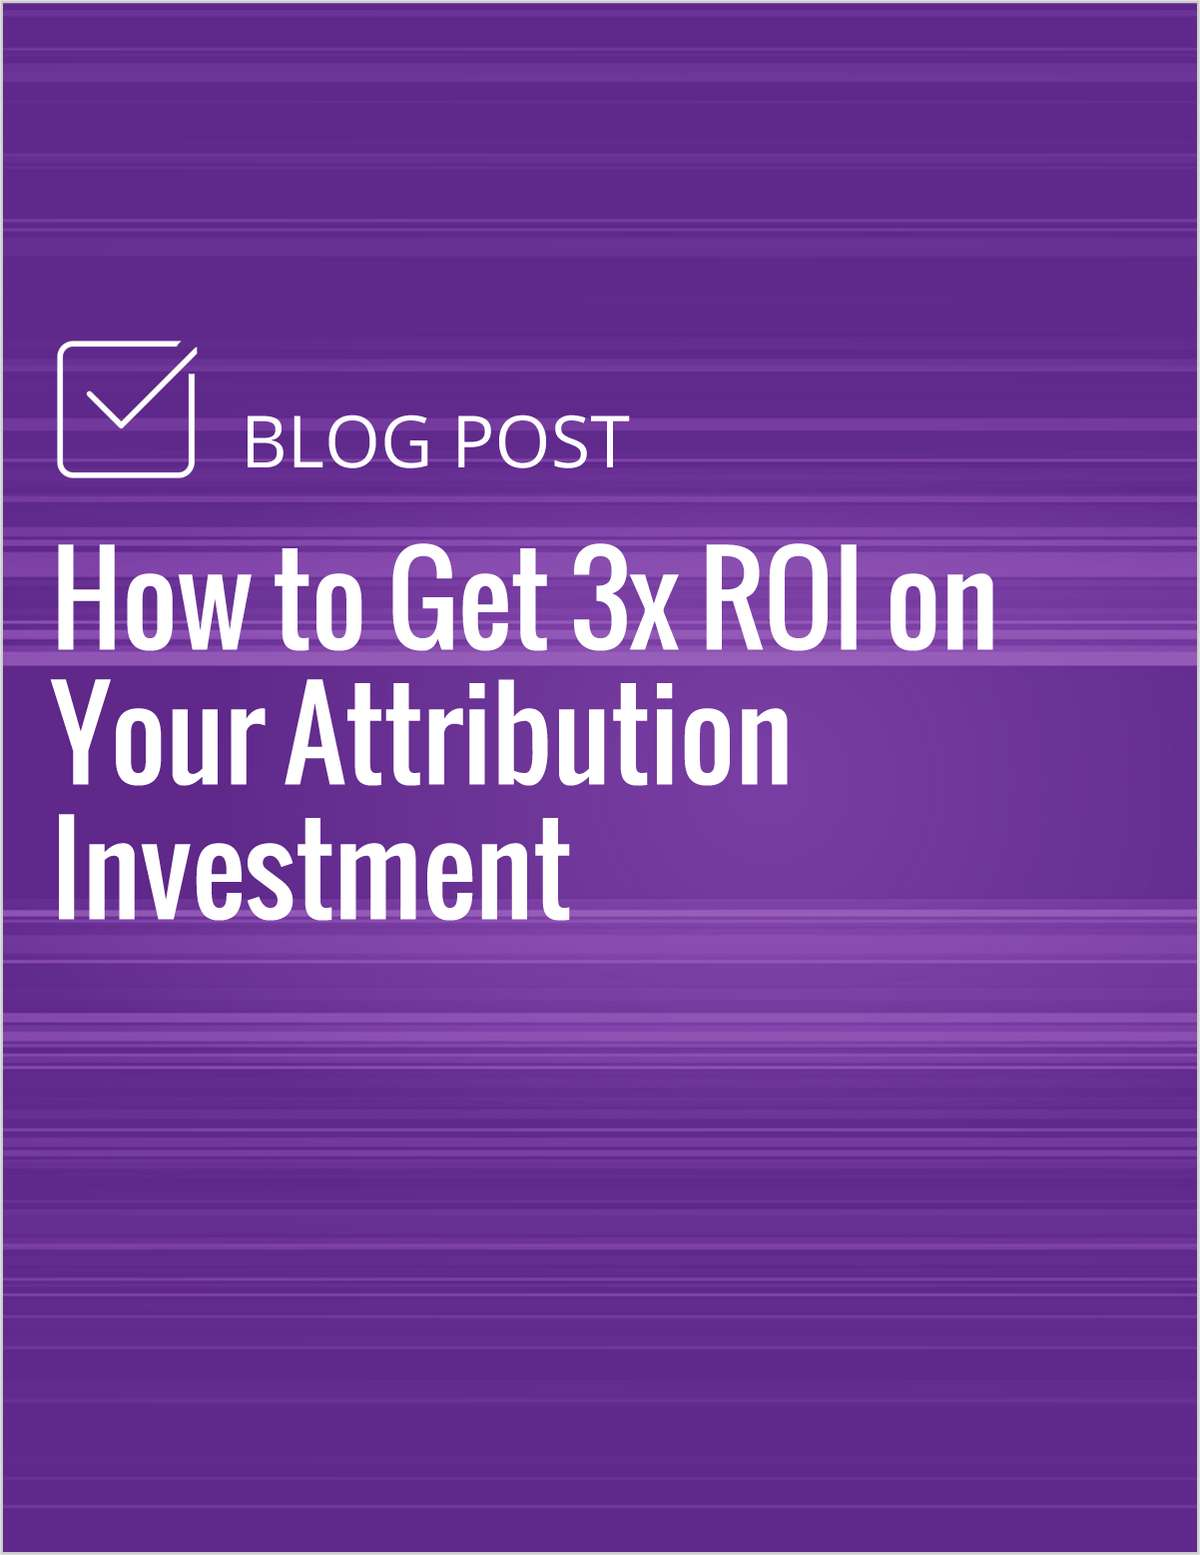 How to Get 3x ROI on Your Attribution Investment